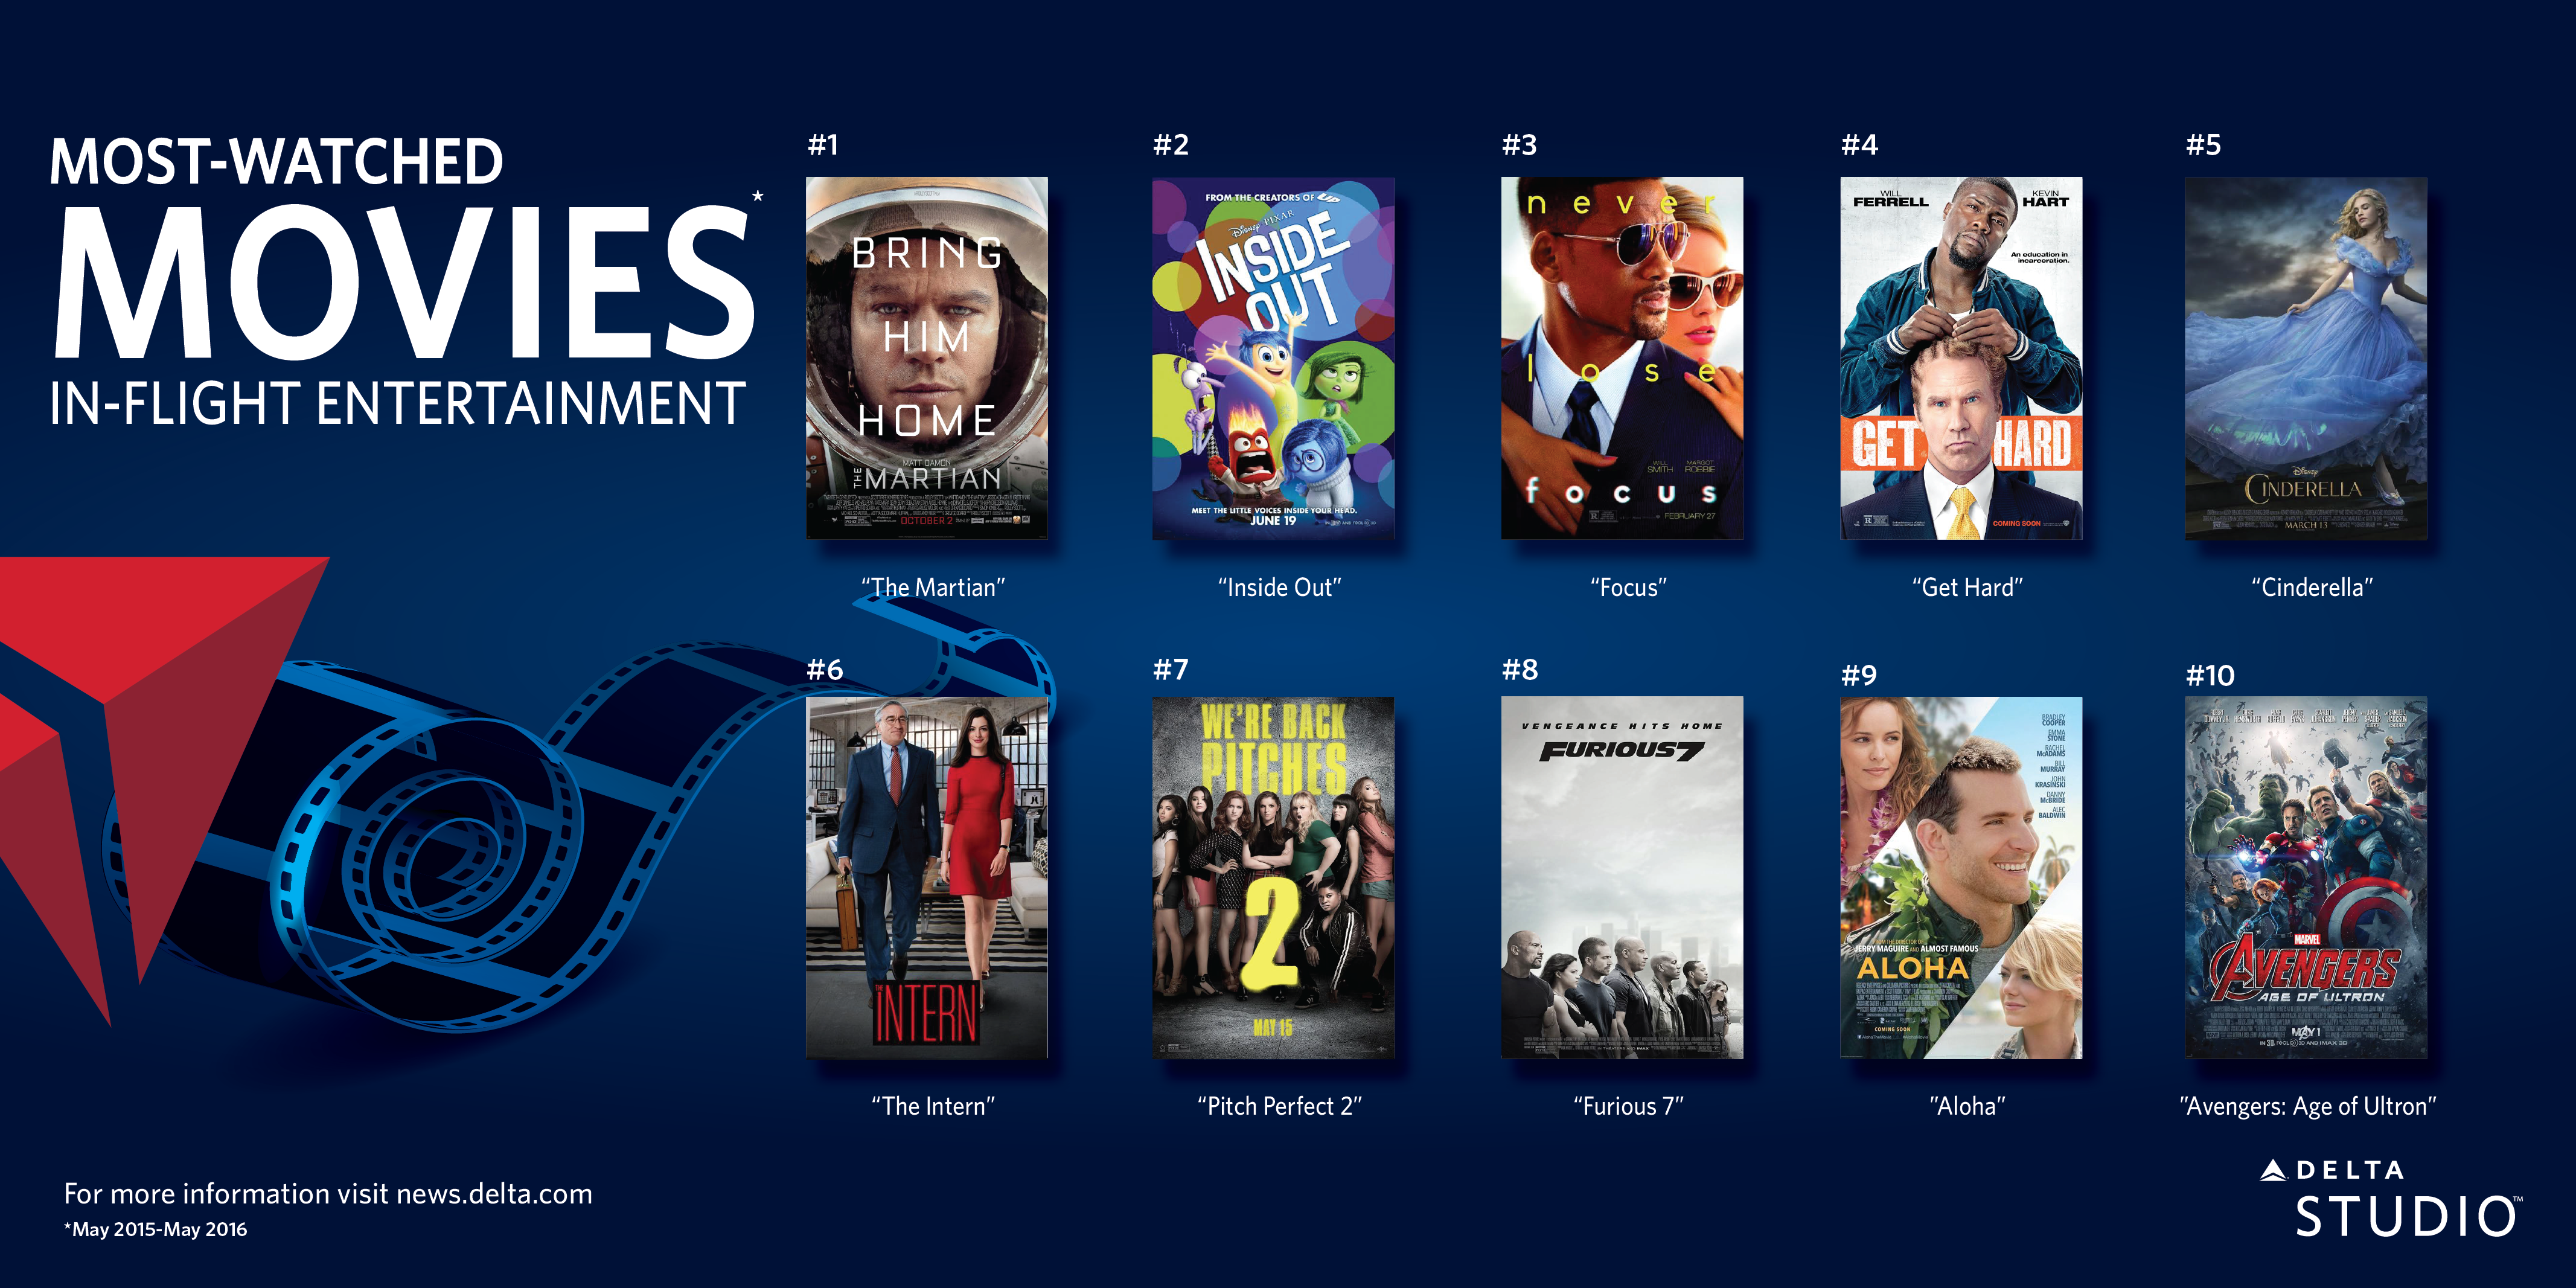 Top 10 movies on Delta...